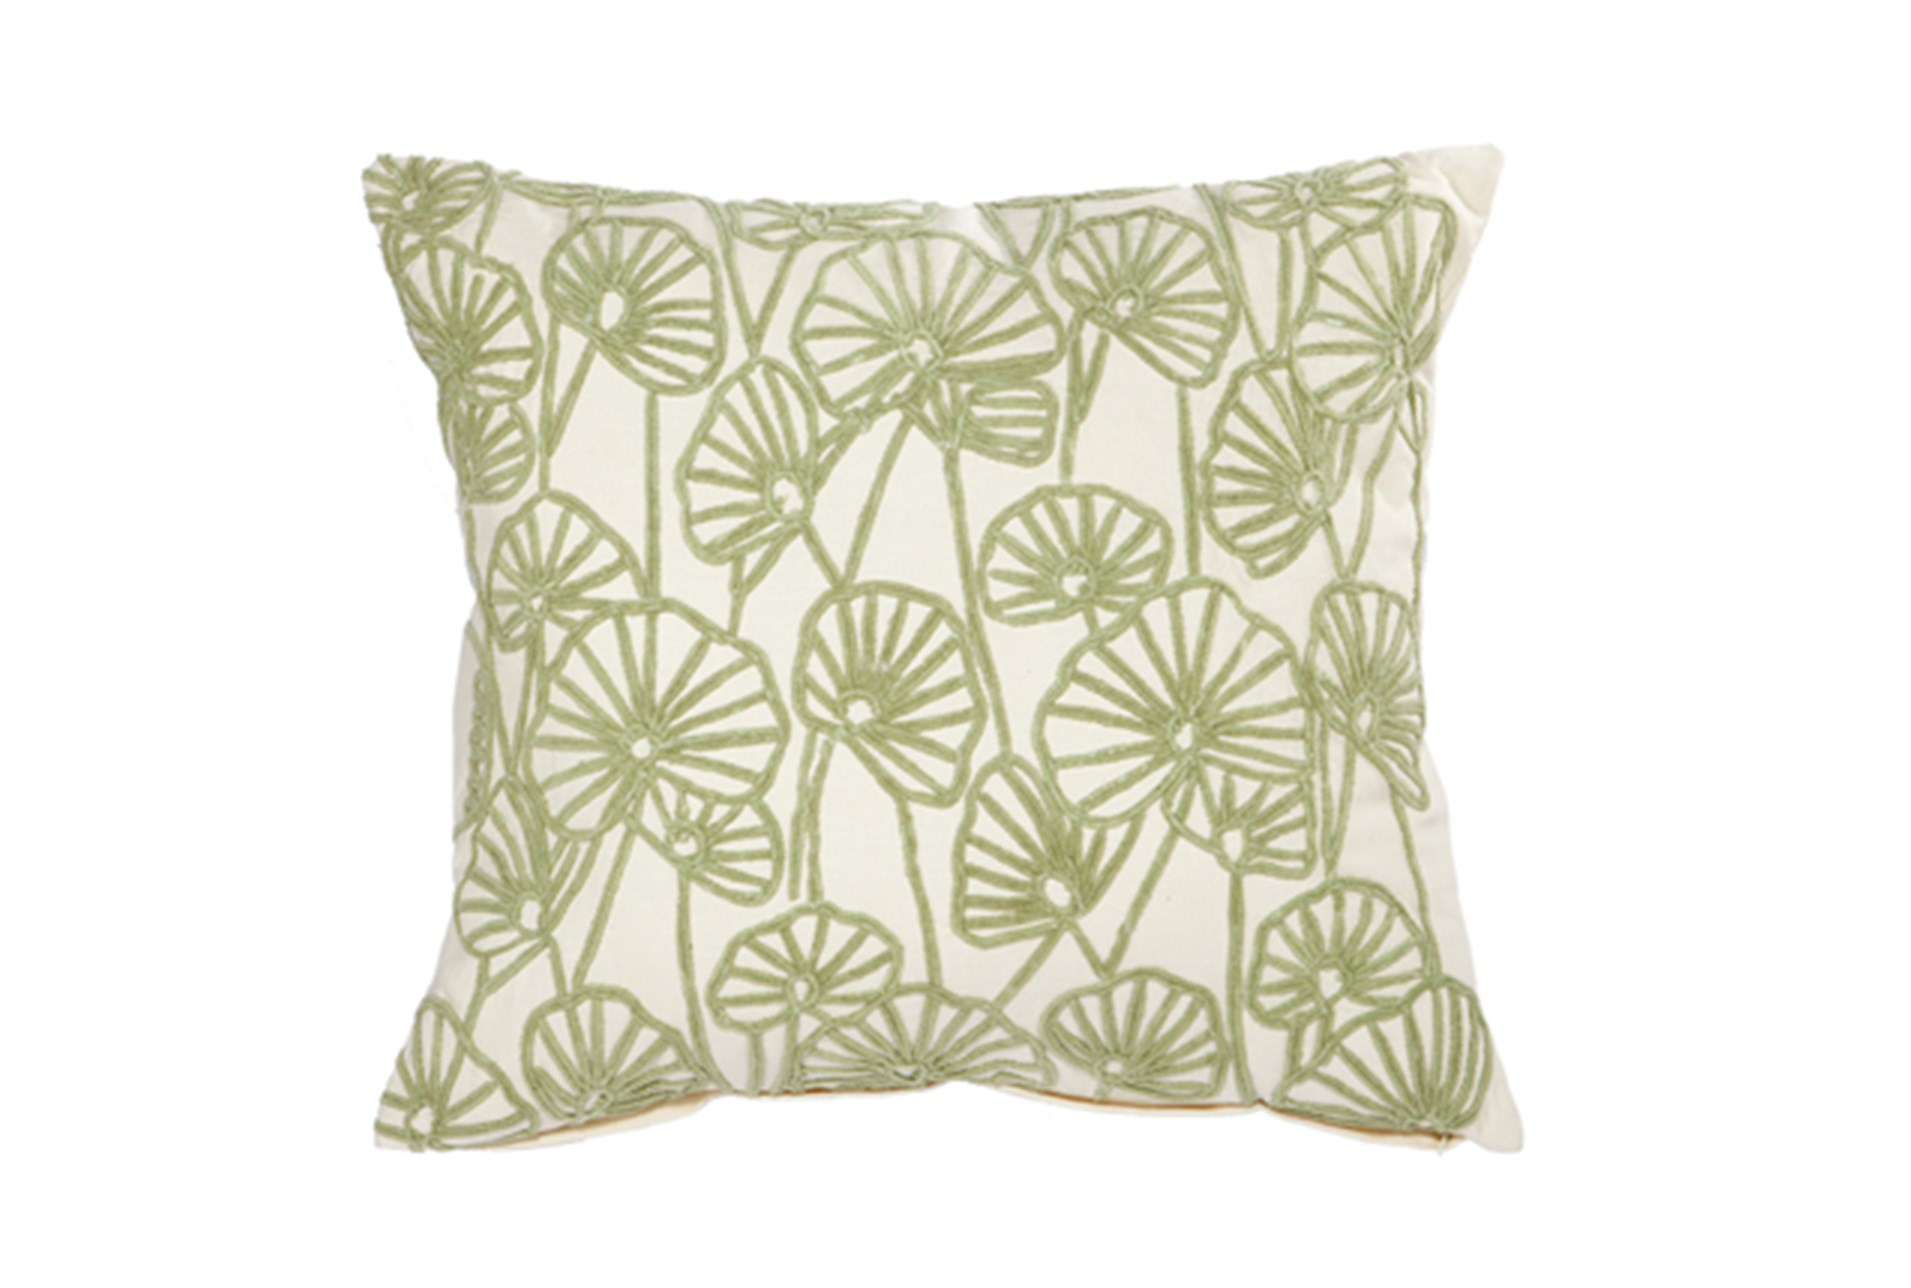 Decorative Pillows Living Spaces : Accent Pillow-Perennial Green 18X20 Living Spaces